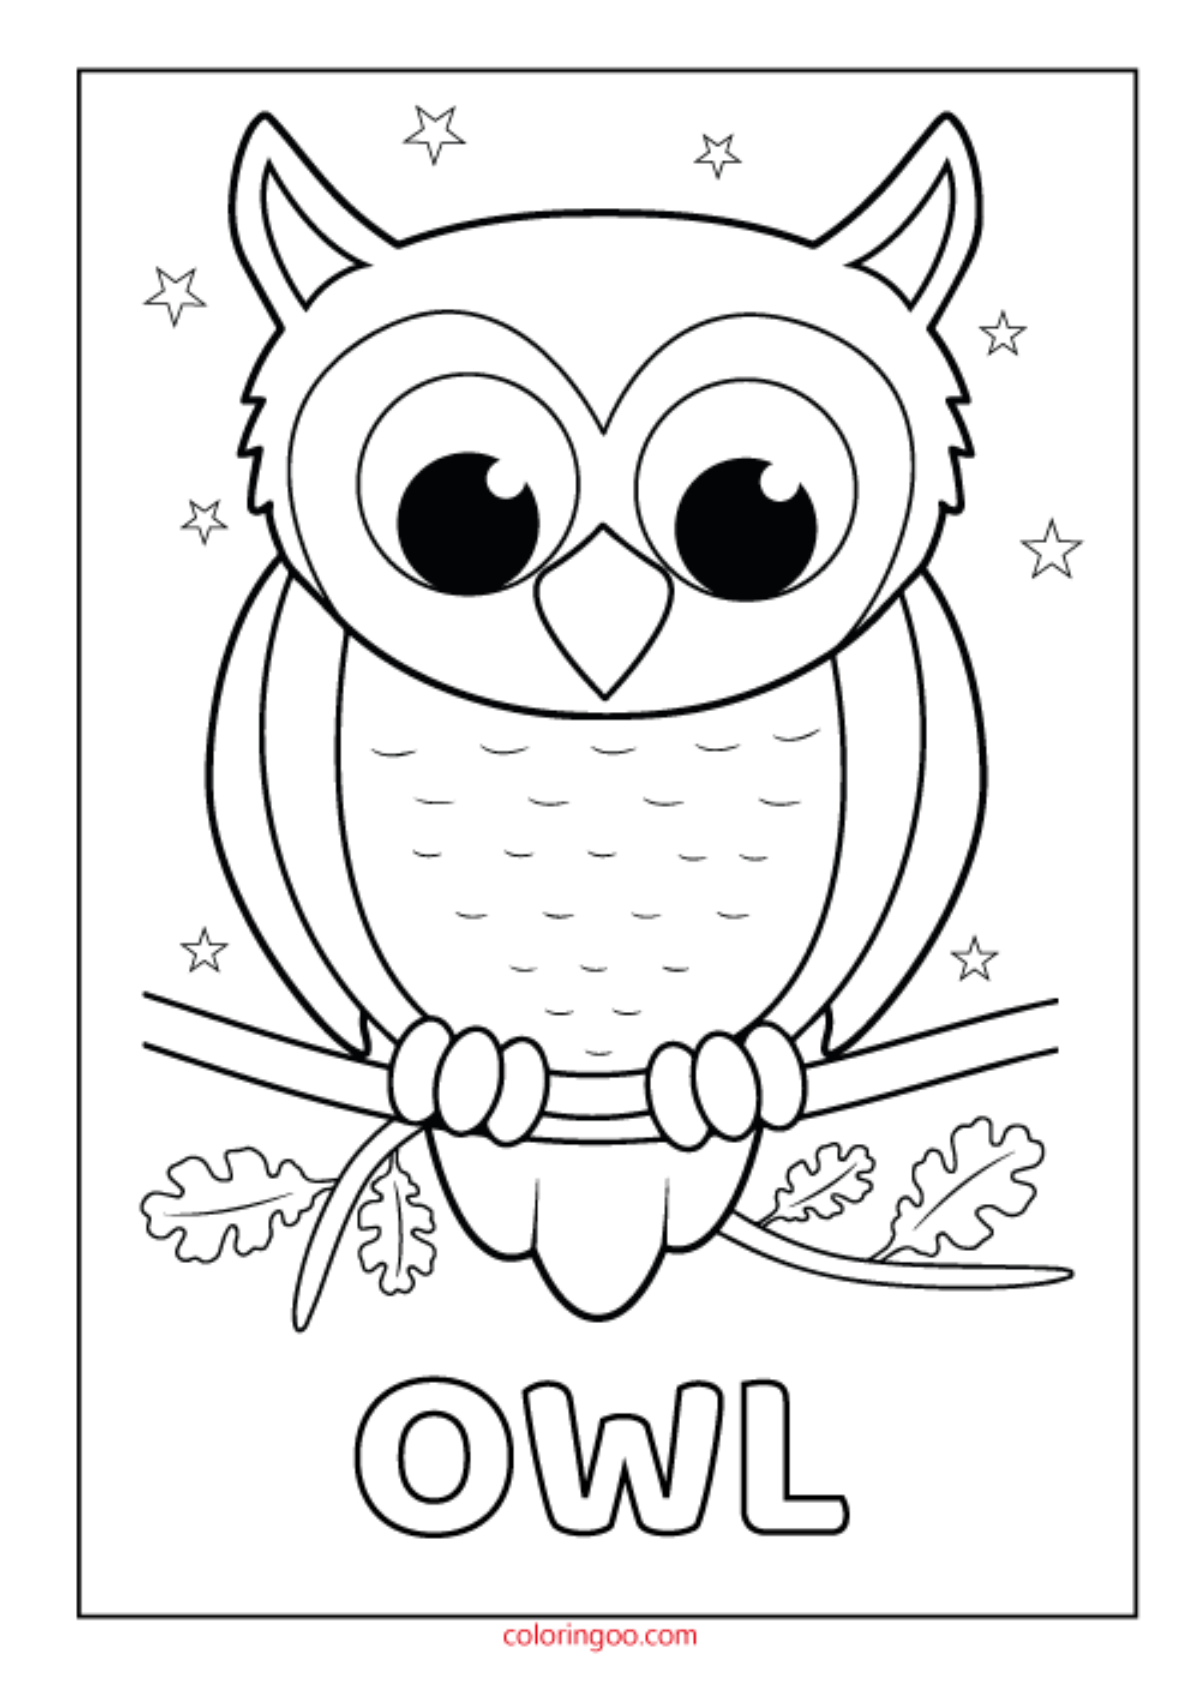 - Owl Printable Coloring – Drawing Pages